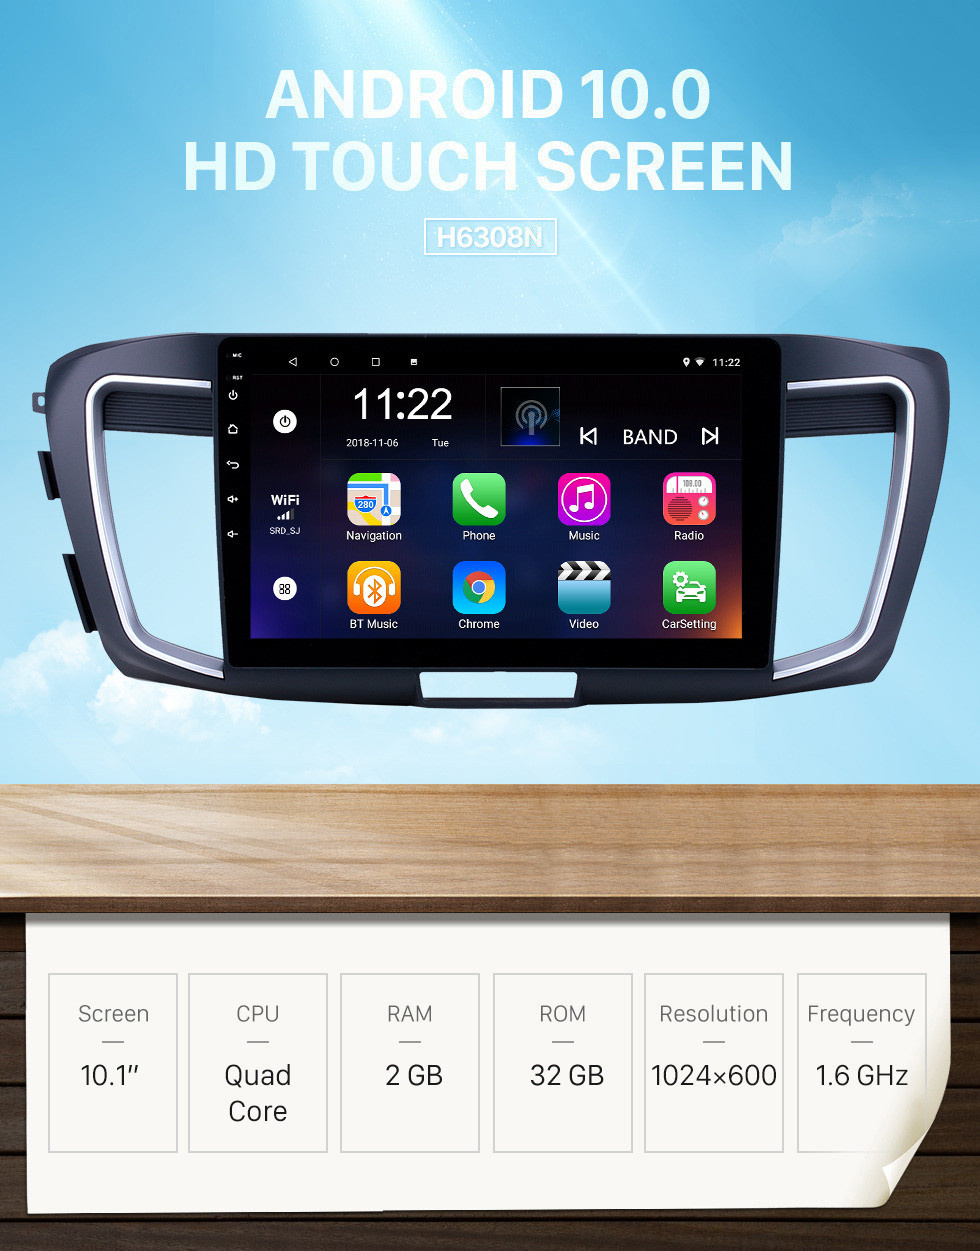 Seicane 10.1 inch Android 10.0 HD Touchscreen GPS Navigation Radio for 2013 Honda Accord 9 Low version with Bluetooth USB WIFI support Carplay OBD